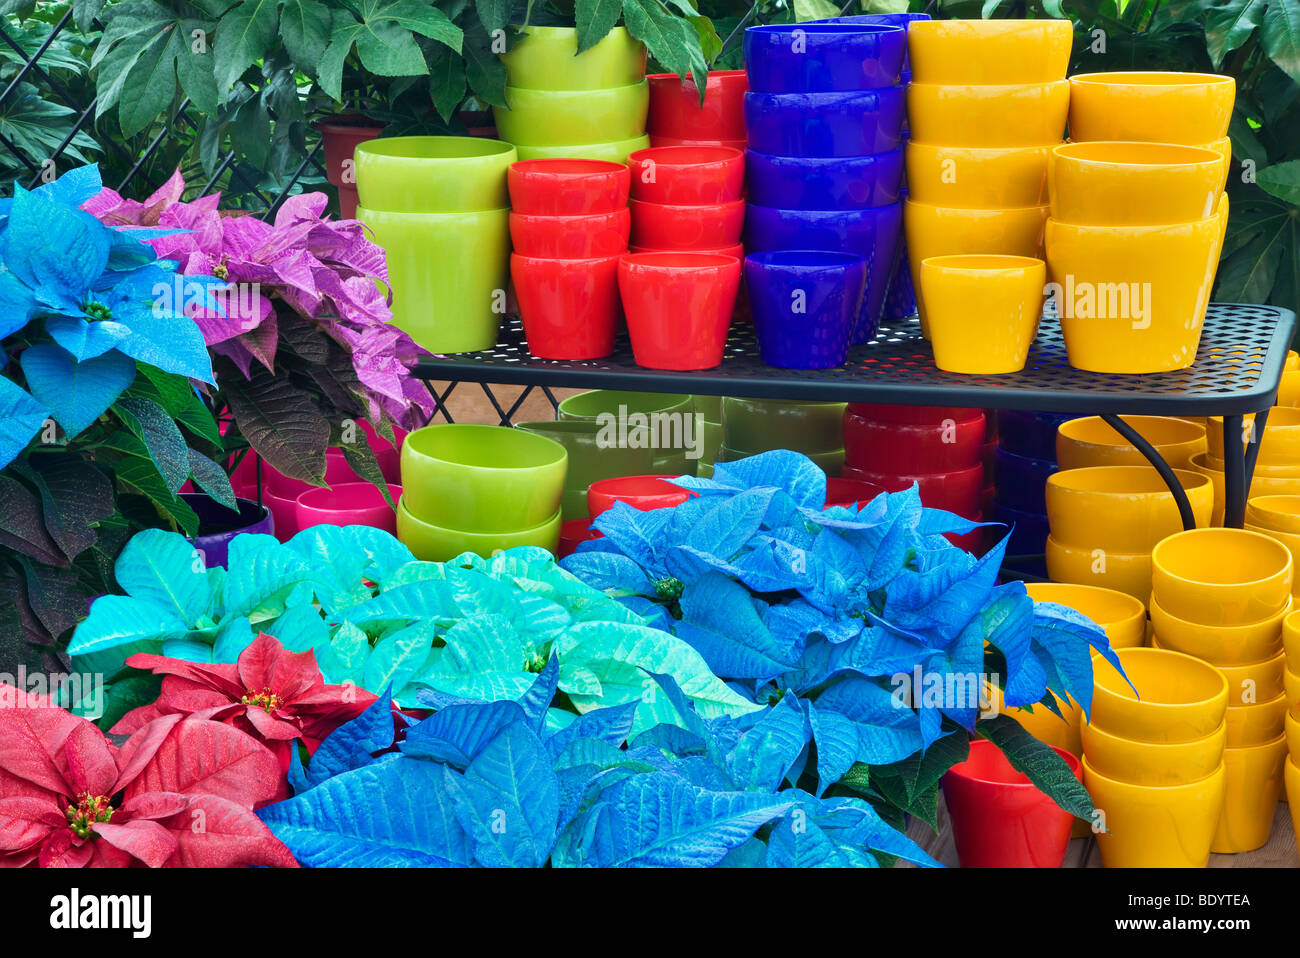 Colorful Pots And Colored Poinsettias Als Garden Nursery